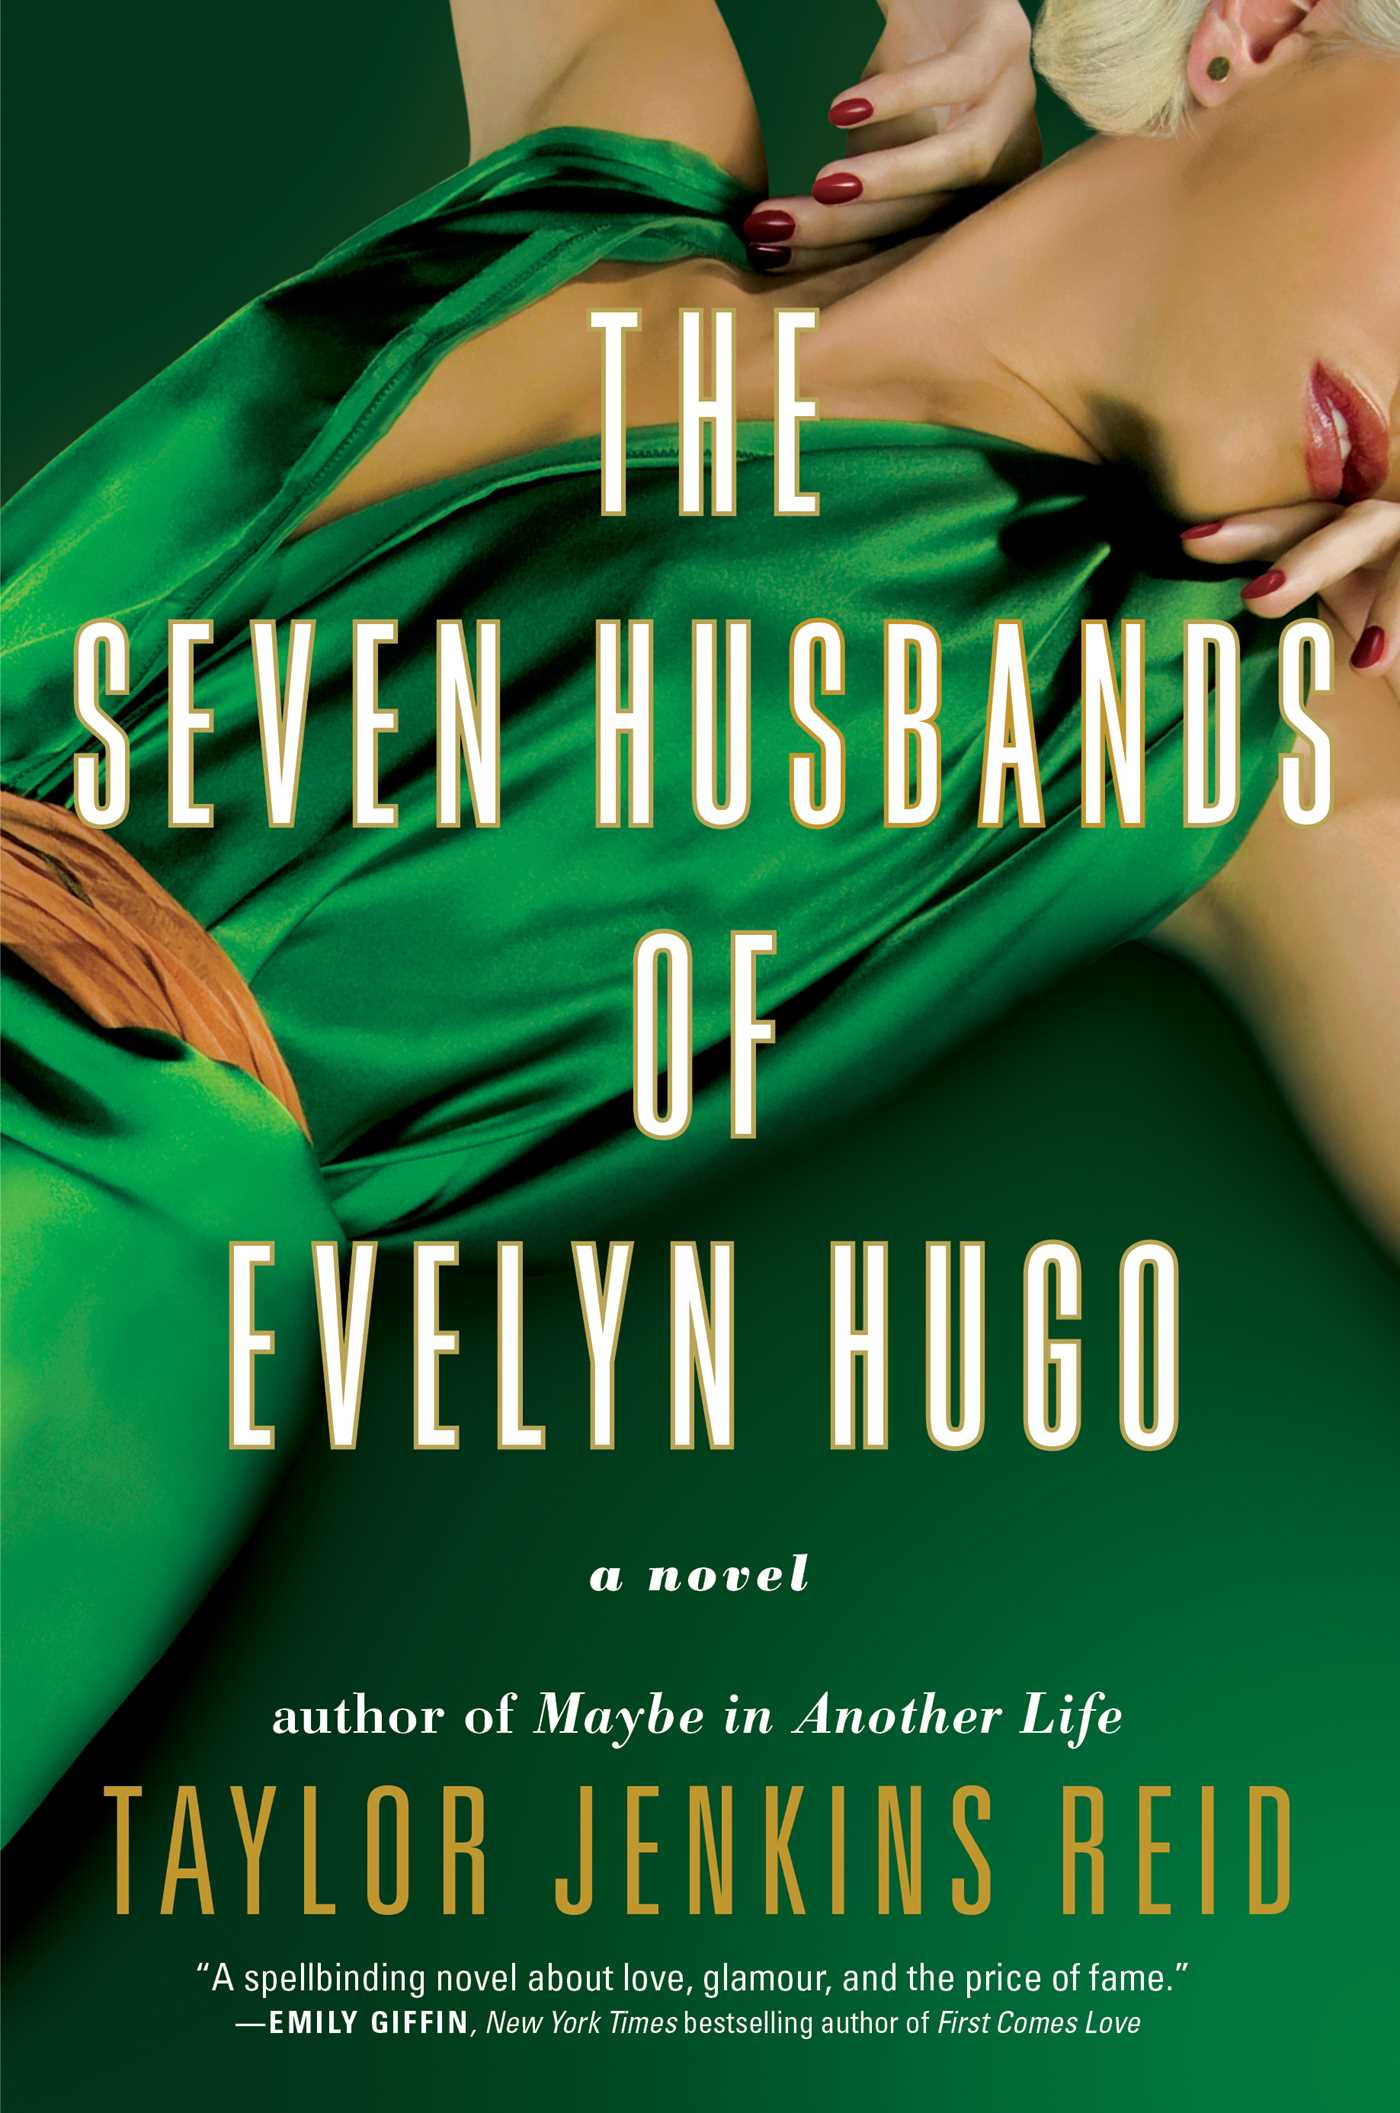 Men Are Canceled / The Seven Husbands of Evelyn Hugo - Come with us to the glamorous world of old Hollywood as we discuss Taylor Jenkins Reid's The Seven Husbands of Evelyn Hugo. The Squad talks about the narrative framing of the novel, how race and queer sexuality are treated, juicy Hollywood gossip, and the real-life starlets on whom the beautiful and mysterious Evelyn Hugo is based. And what about that twist?! Plus, find out why men are canceled and women are renewed for another season, and how strict binaries keep us in boxes. Then we dig into listener feedback and hear your favorite things of 2017, and of course, we tell you what's on the #BookSquadBlog and what's up next on the podcast. Hint: it's supposed to be sexy, but it mostly isn't. Listen to find out!